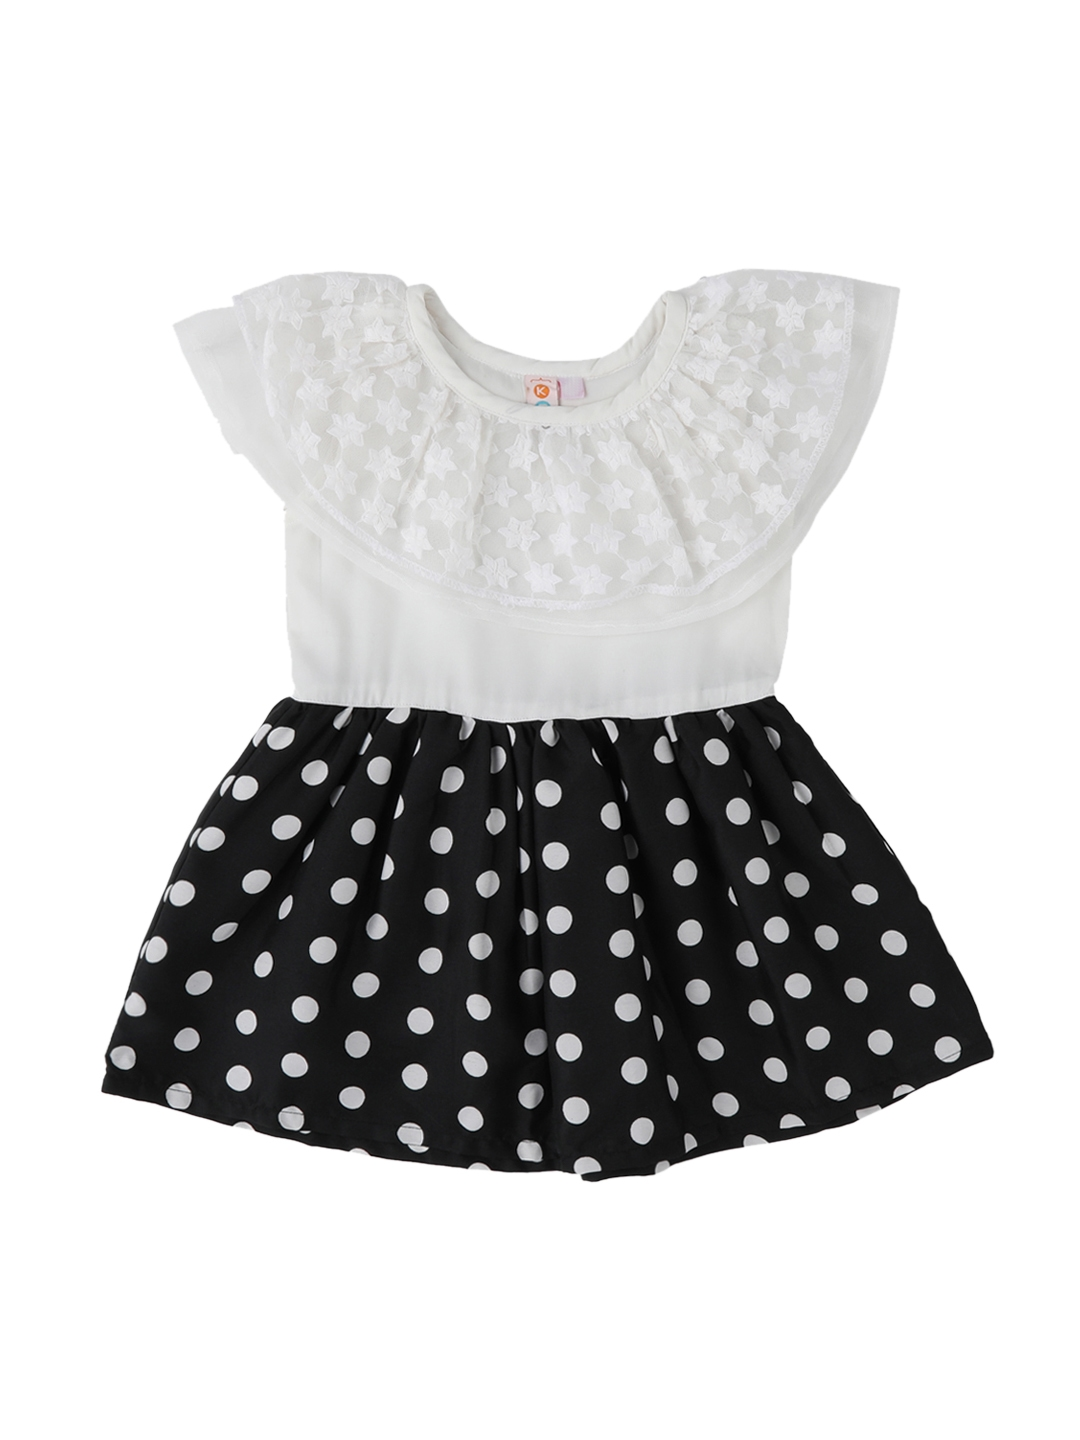 b1e1d8400f Buy Kids On Board Girls White Printed Fit And Flare Dress - Dresses ...